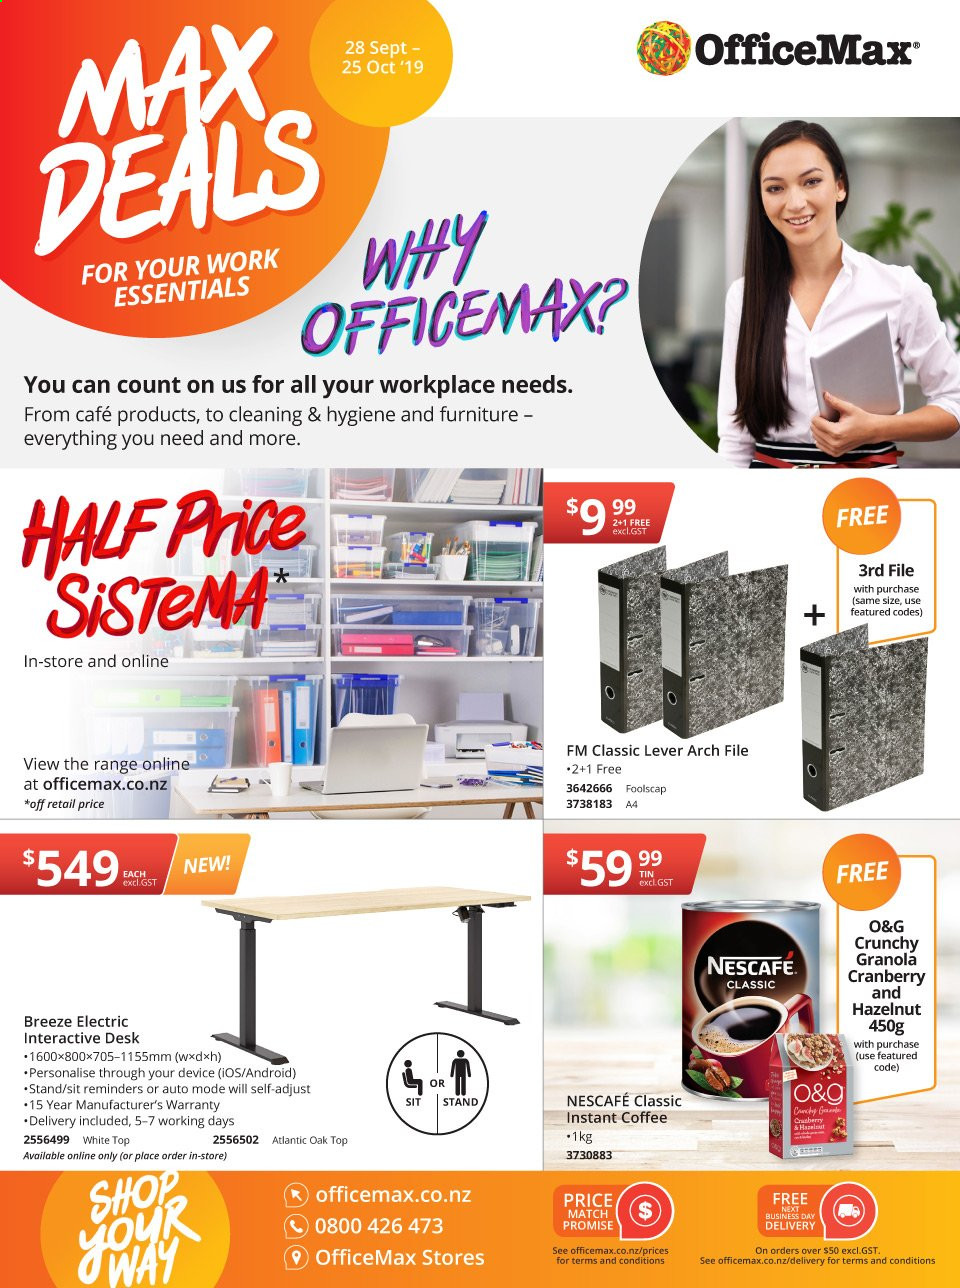 OfficeMax mailer - 28.09.2019 - 25.10.2019 - Sales products - instant coffee, Nescafé, arch files, lever arch, essentials. Page 1.